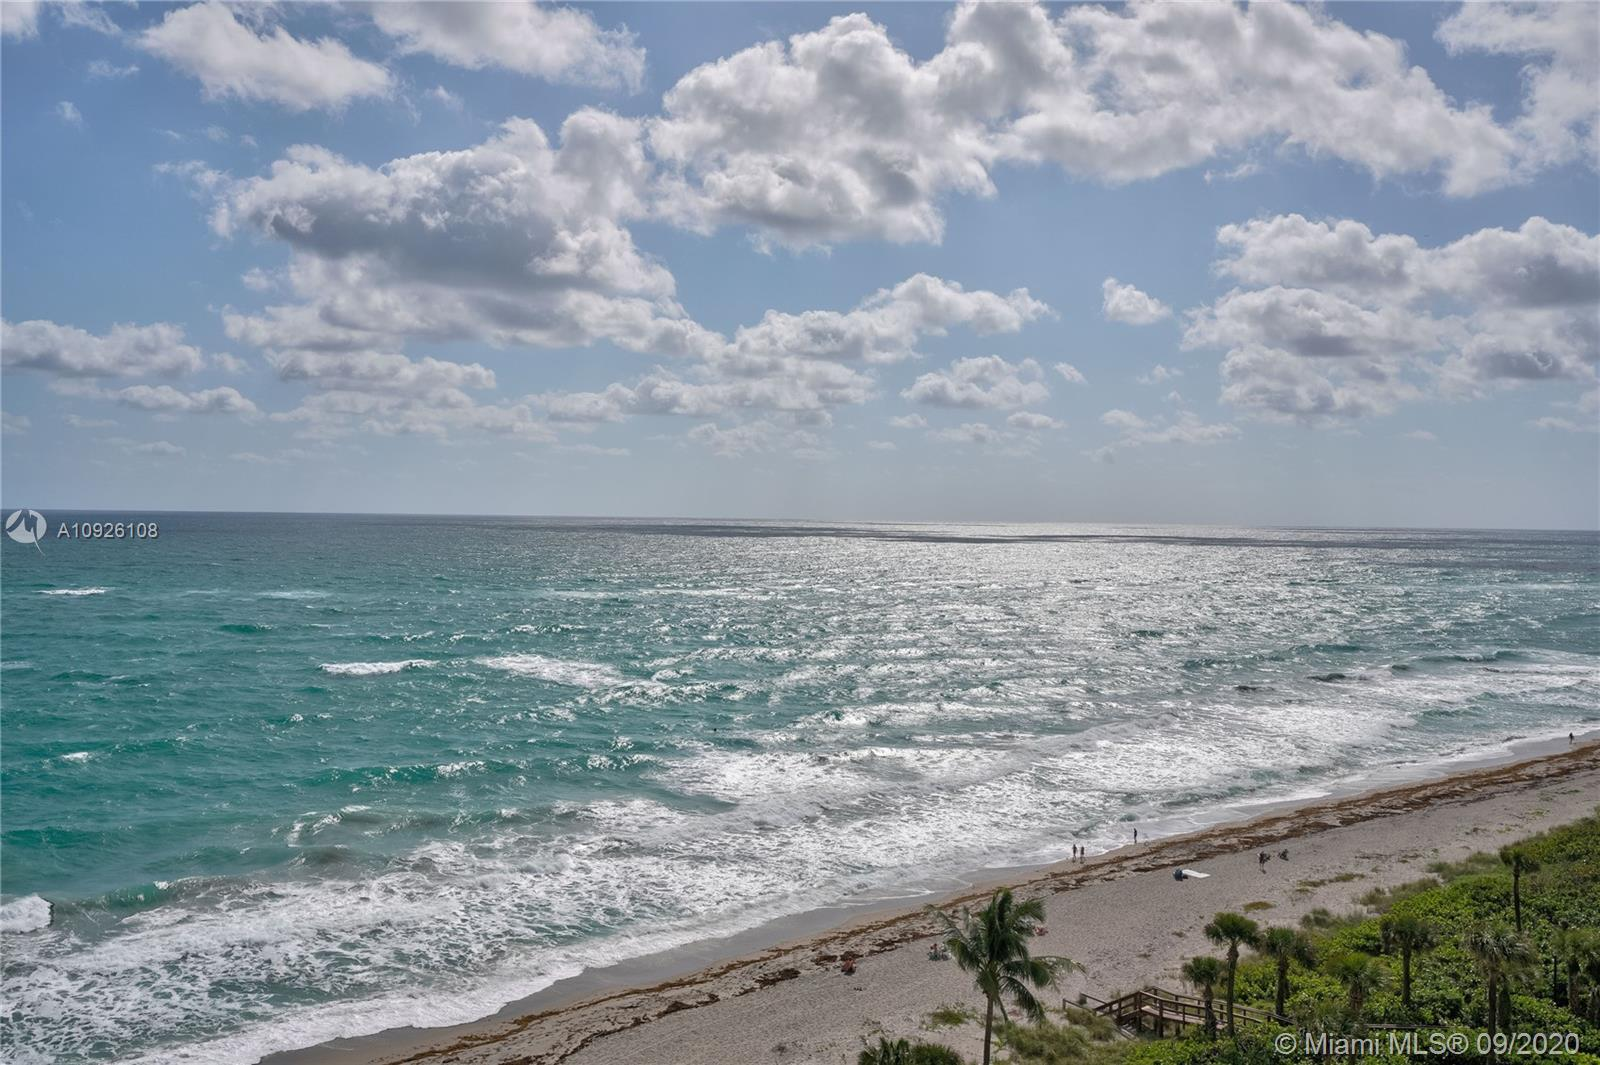 Fully Furnished upper floor renovated condo in coveted 400 building - possibly the best Ocean & Jupi